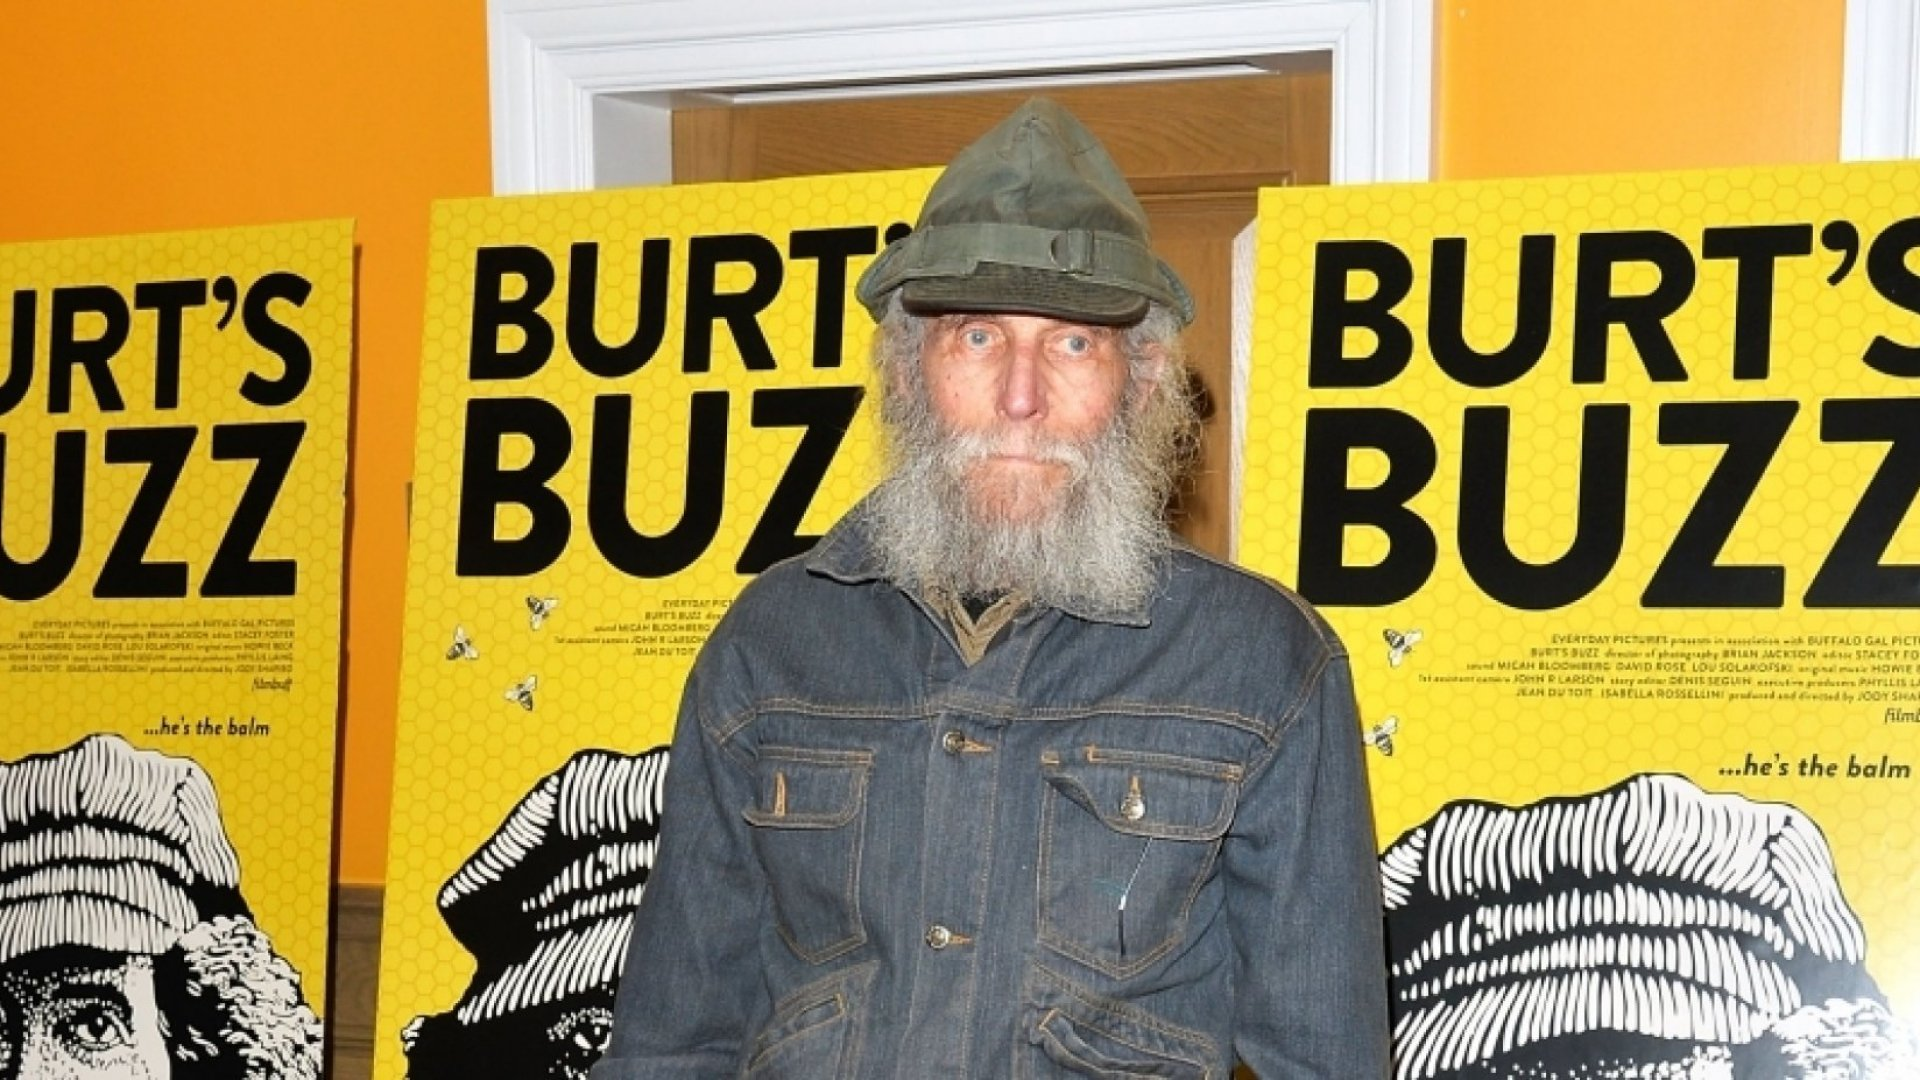 Burt's Bees Personifies the Awkward Marriage Between Hippiedom and Business